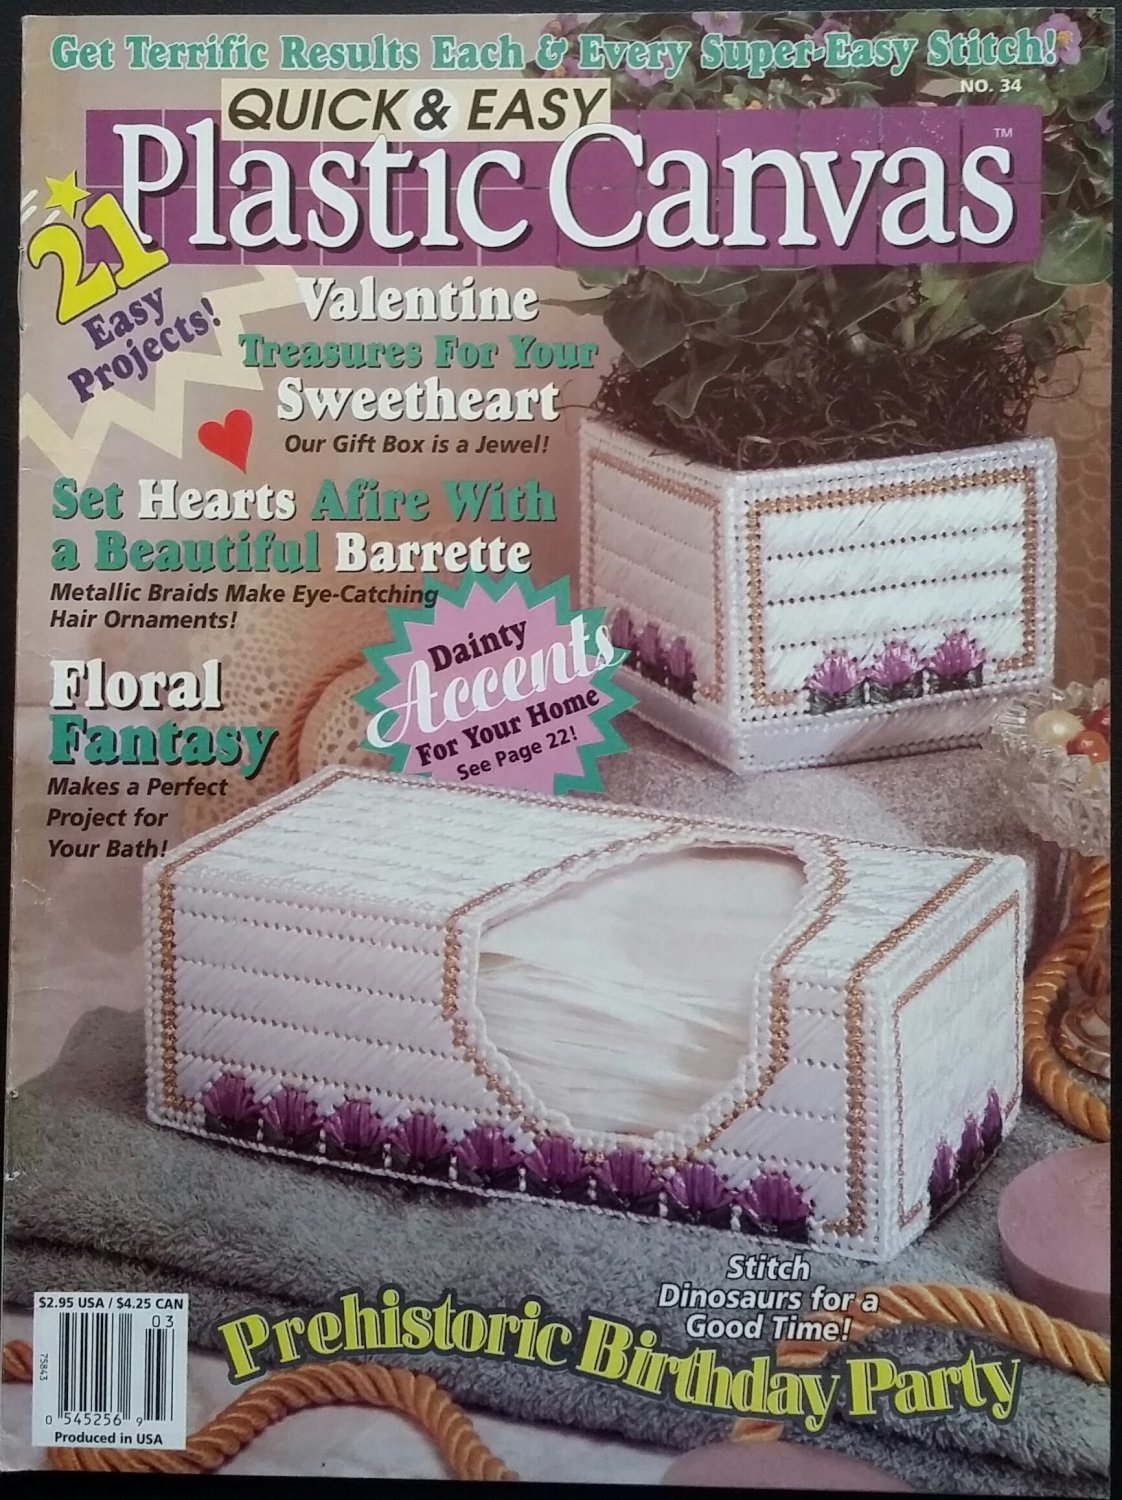 Quick & Easy Plastic Canvas No. 34 Magazine (Feb / Mar 1995)